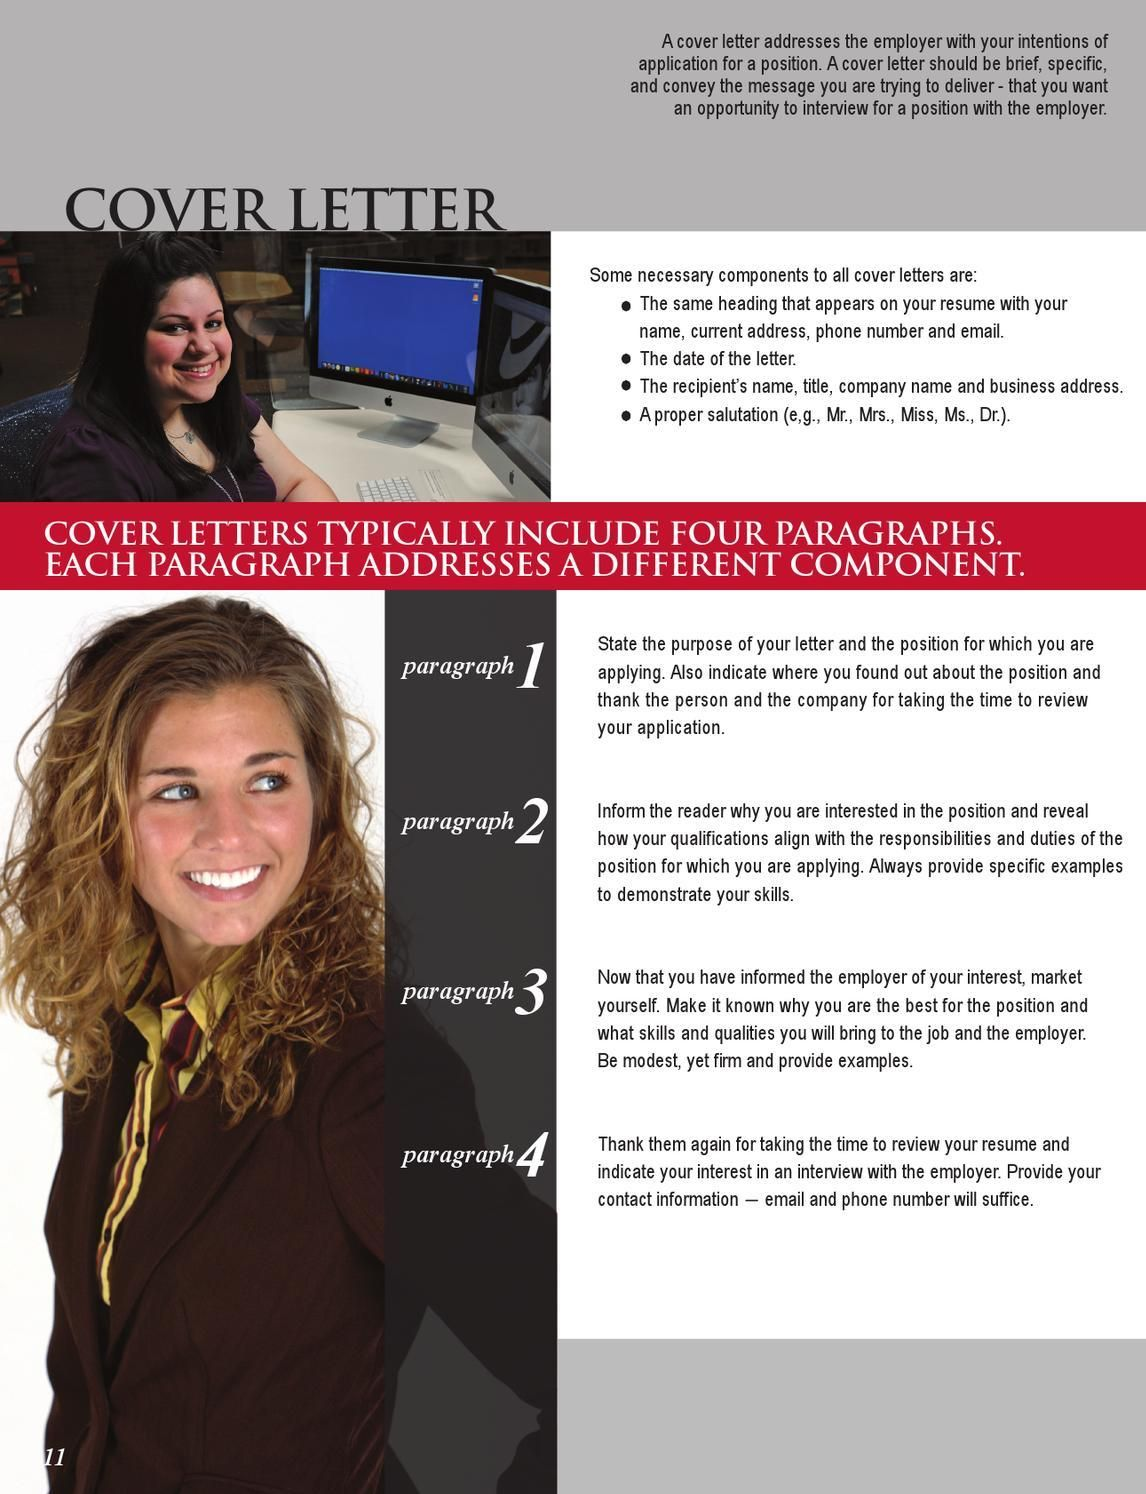 Svsu Career Guide 2013 Interview Coaching Career Interview